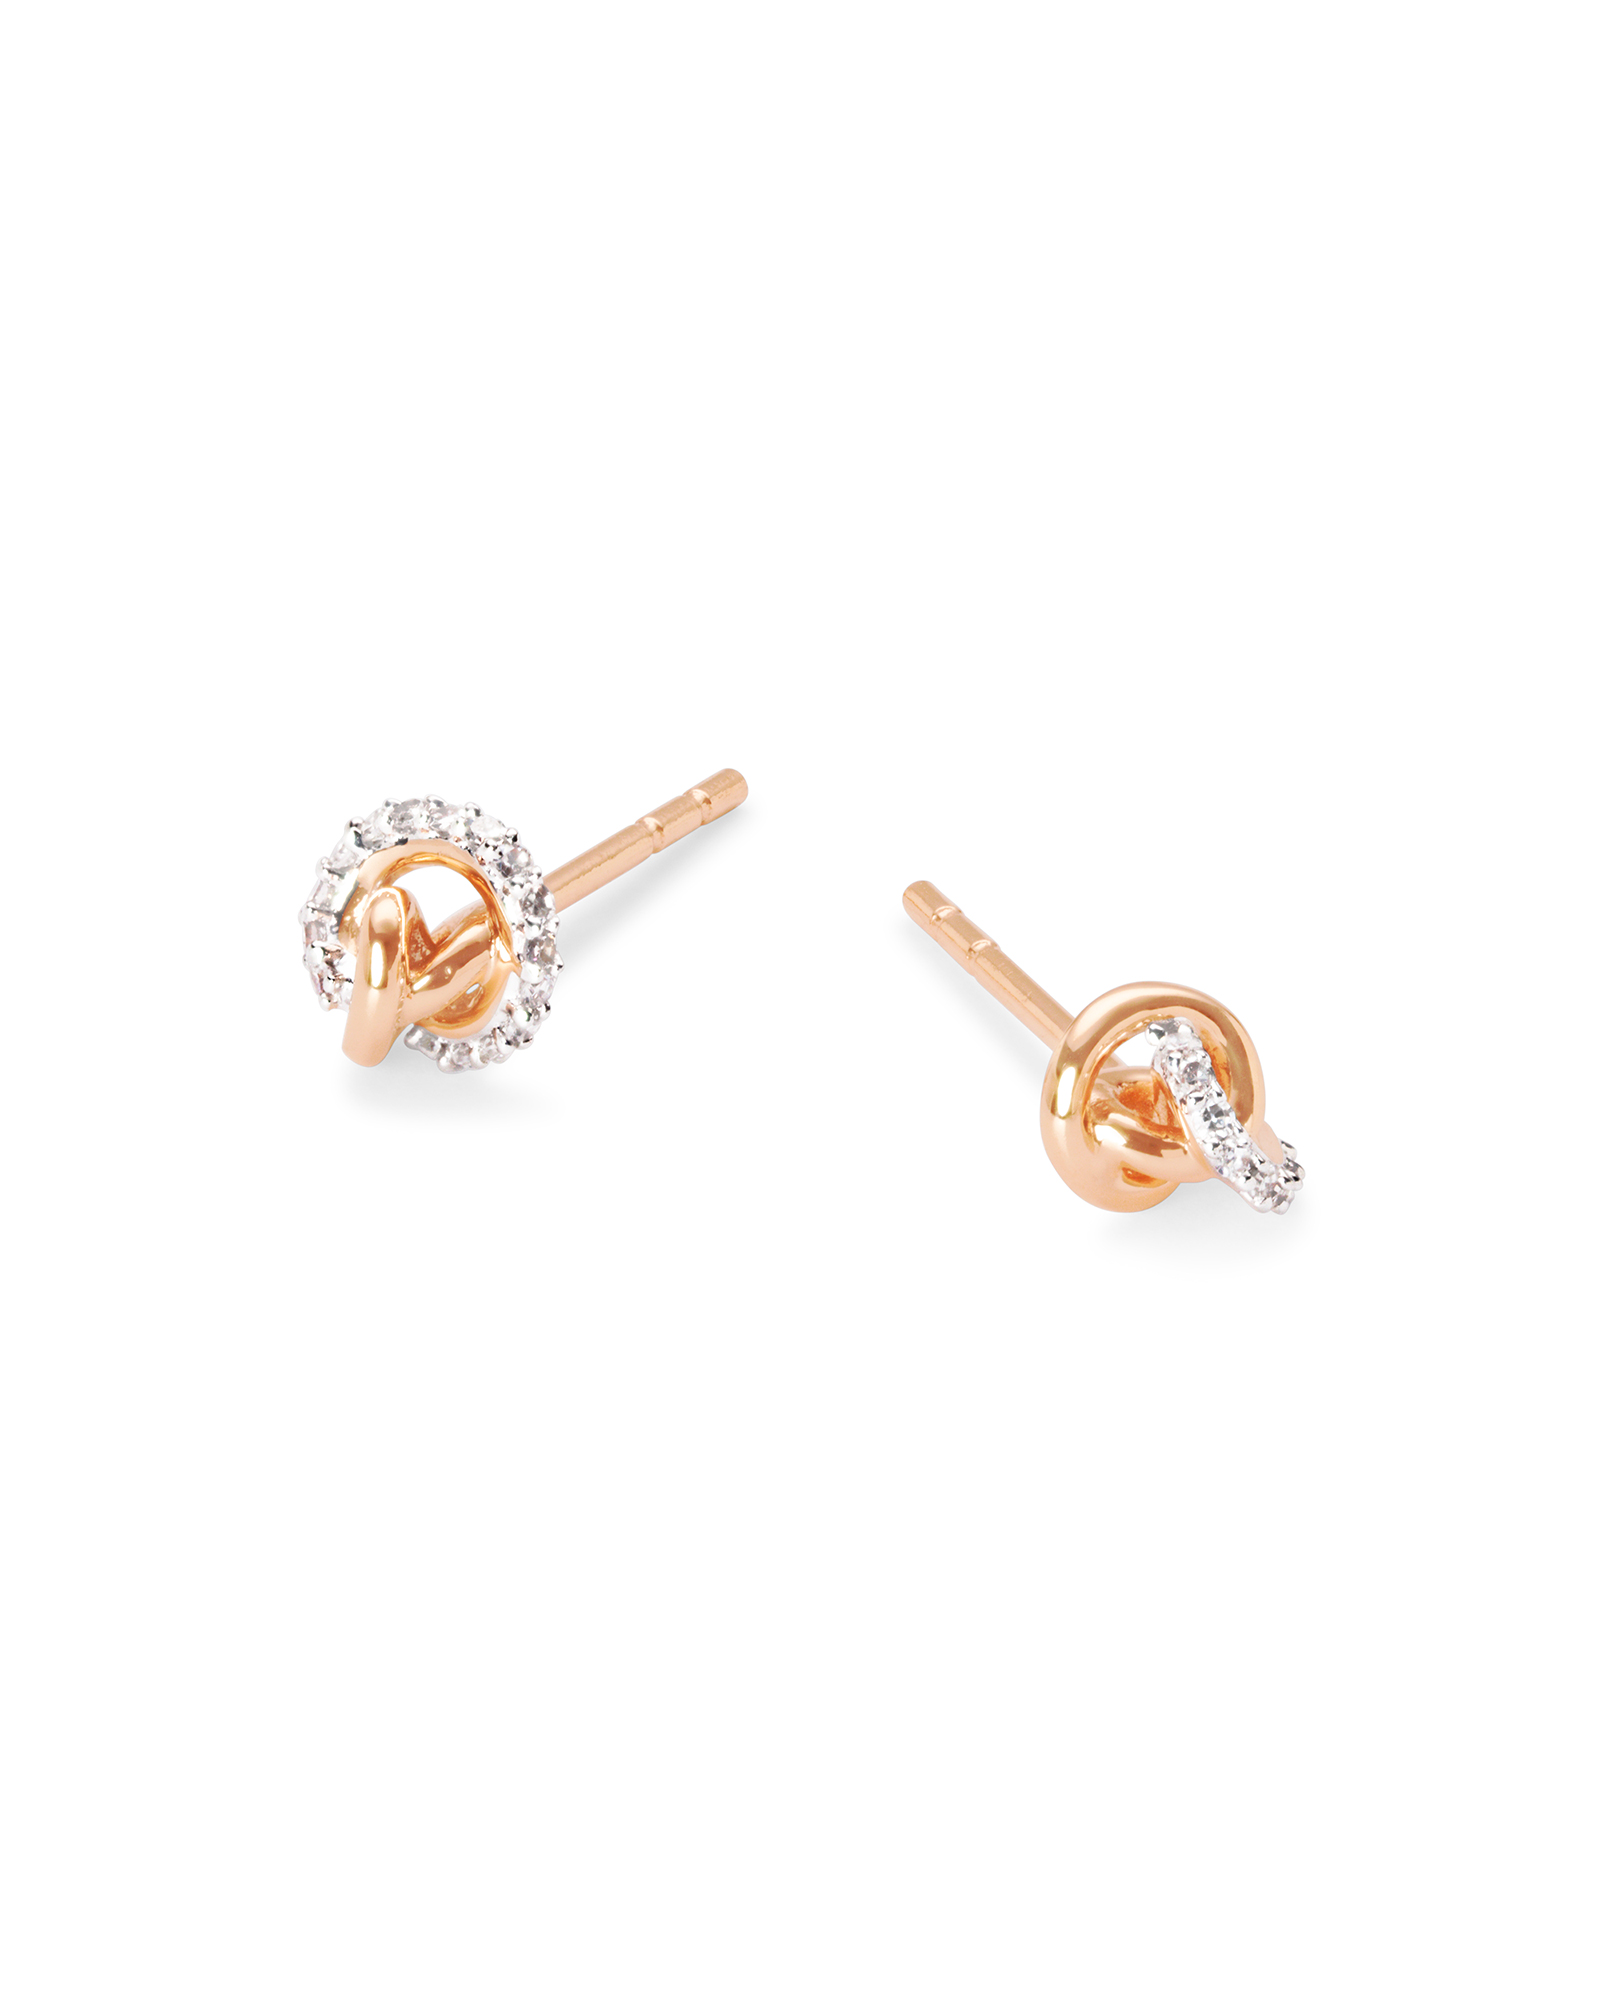 Love Knot 14K Rose Gold Stud Earring in White Diamond